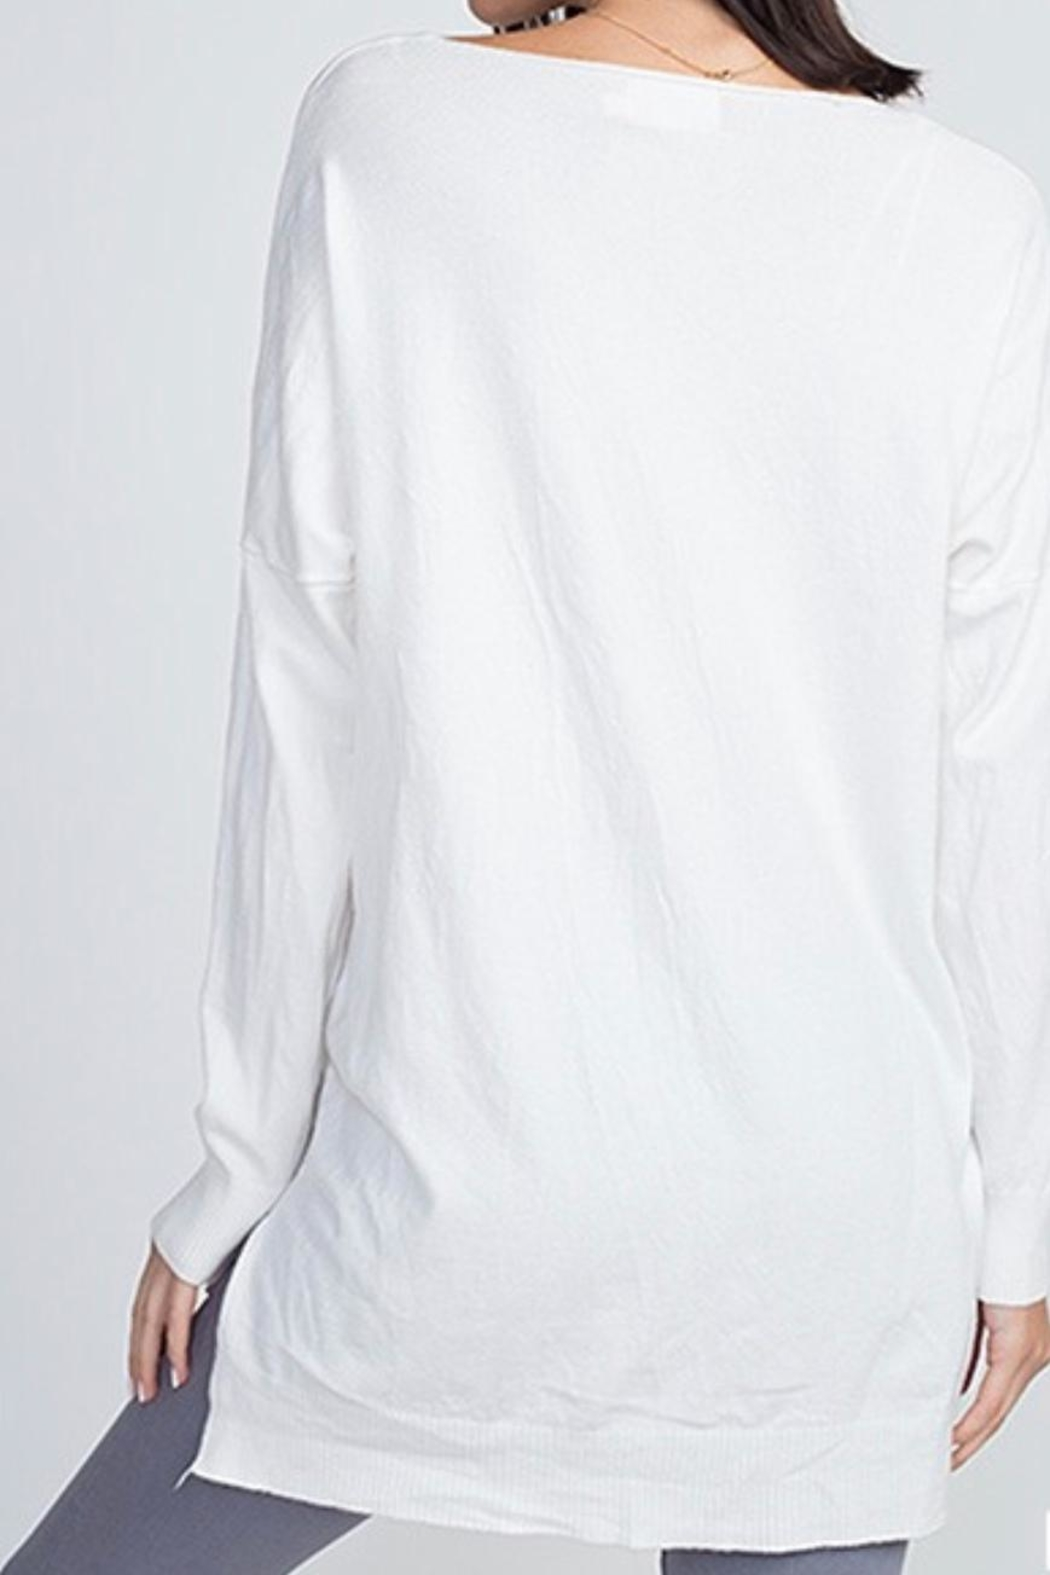 8c3fd5bf6 Dreamers Off-White Soft Sweater from Wisconsin by Apricot Lane ...